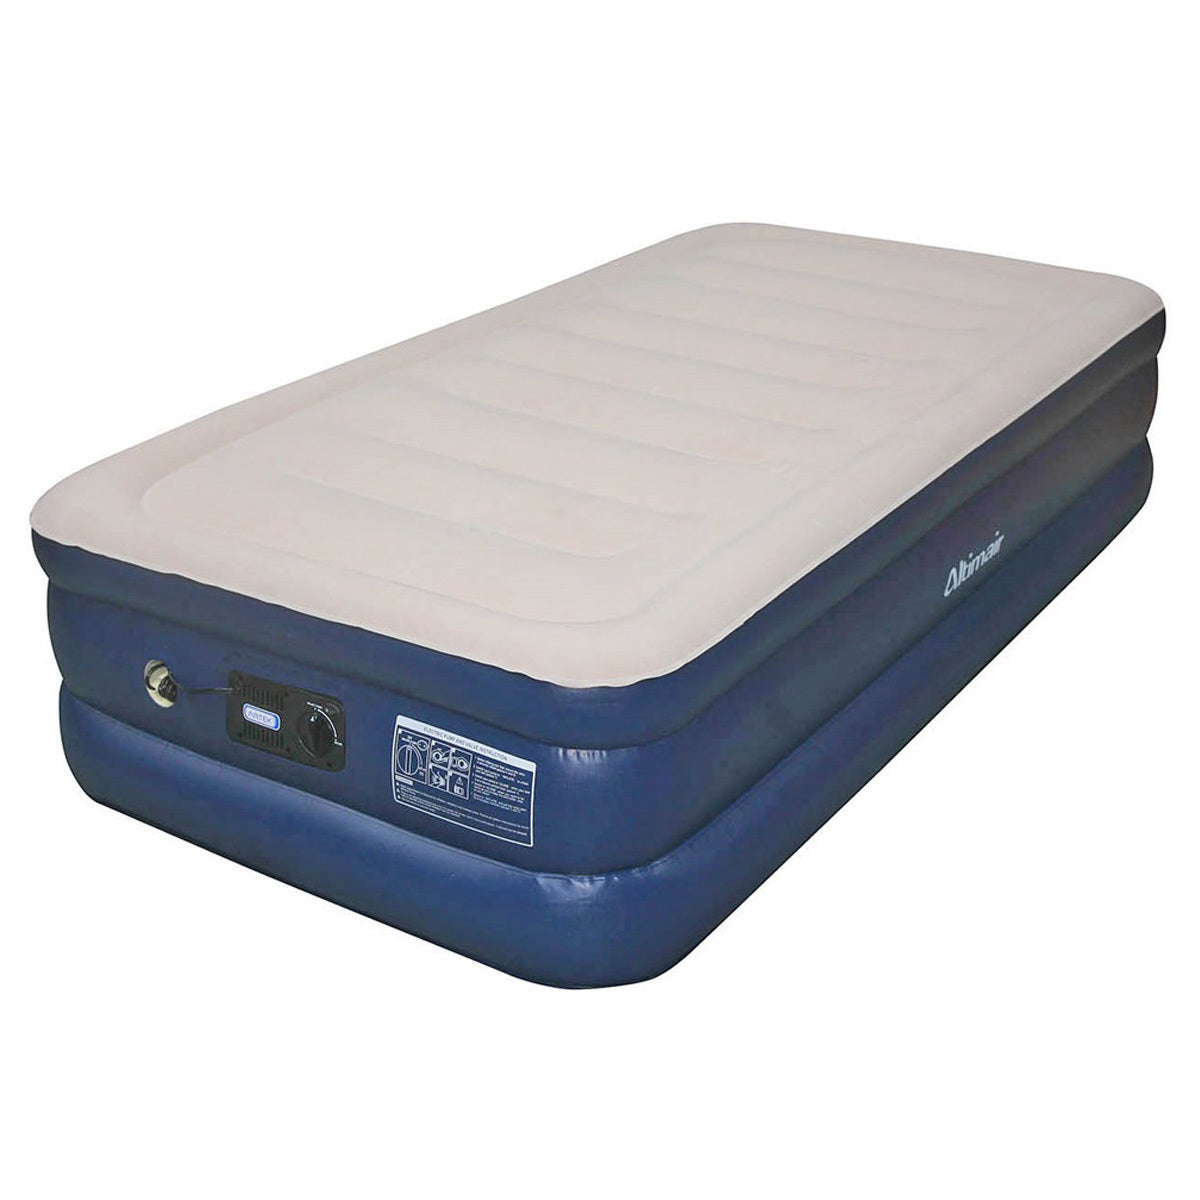 Shop Airtek Twin size Flocked Top Air Mattress with Memory Foam